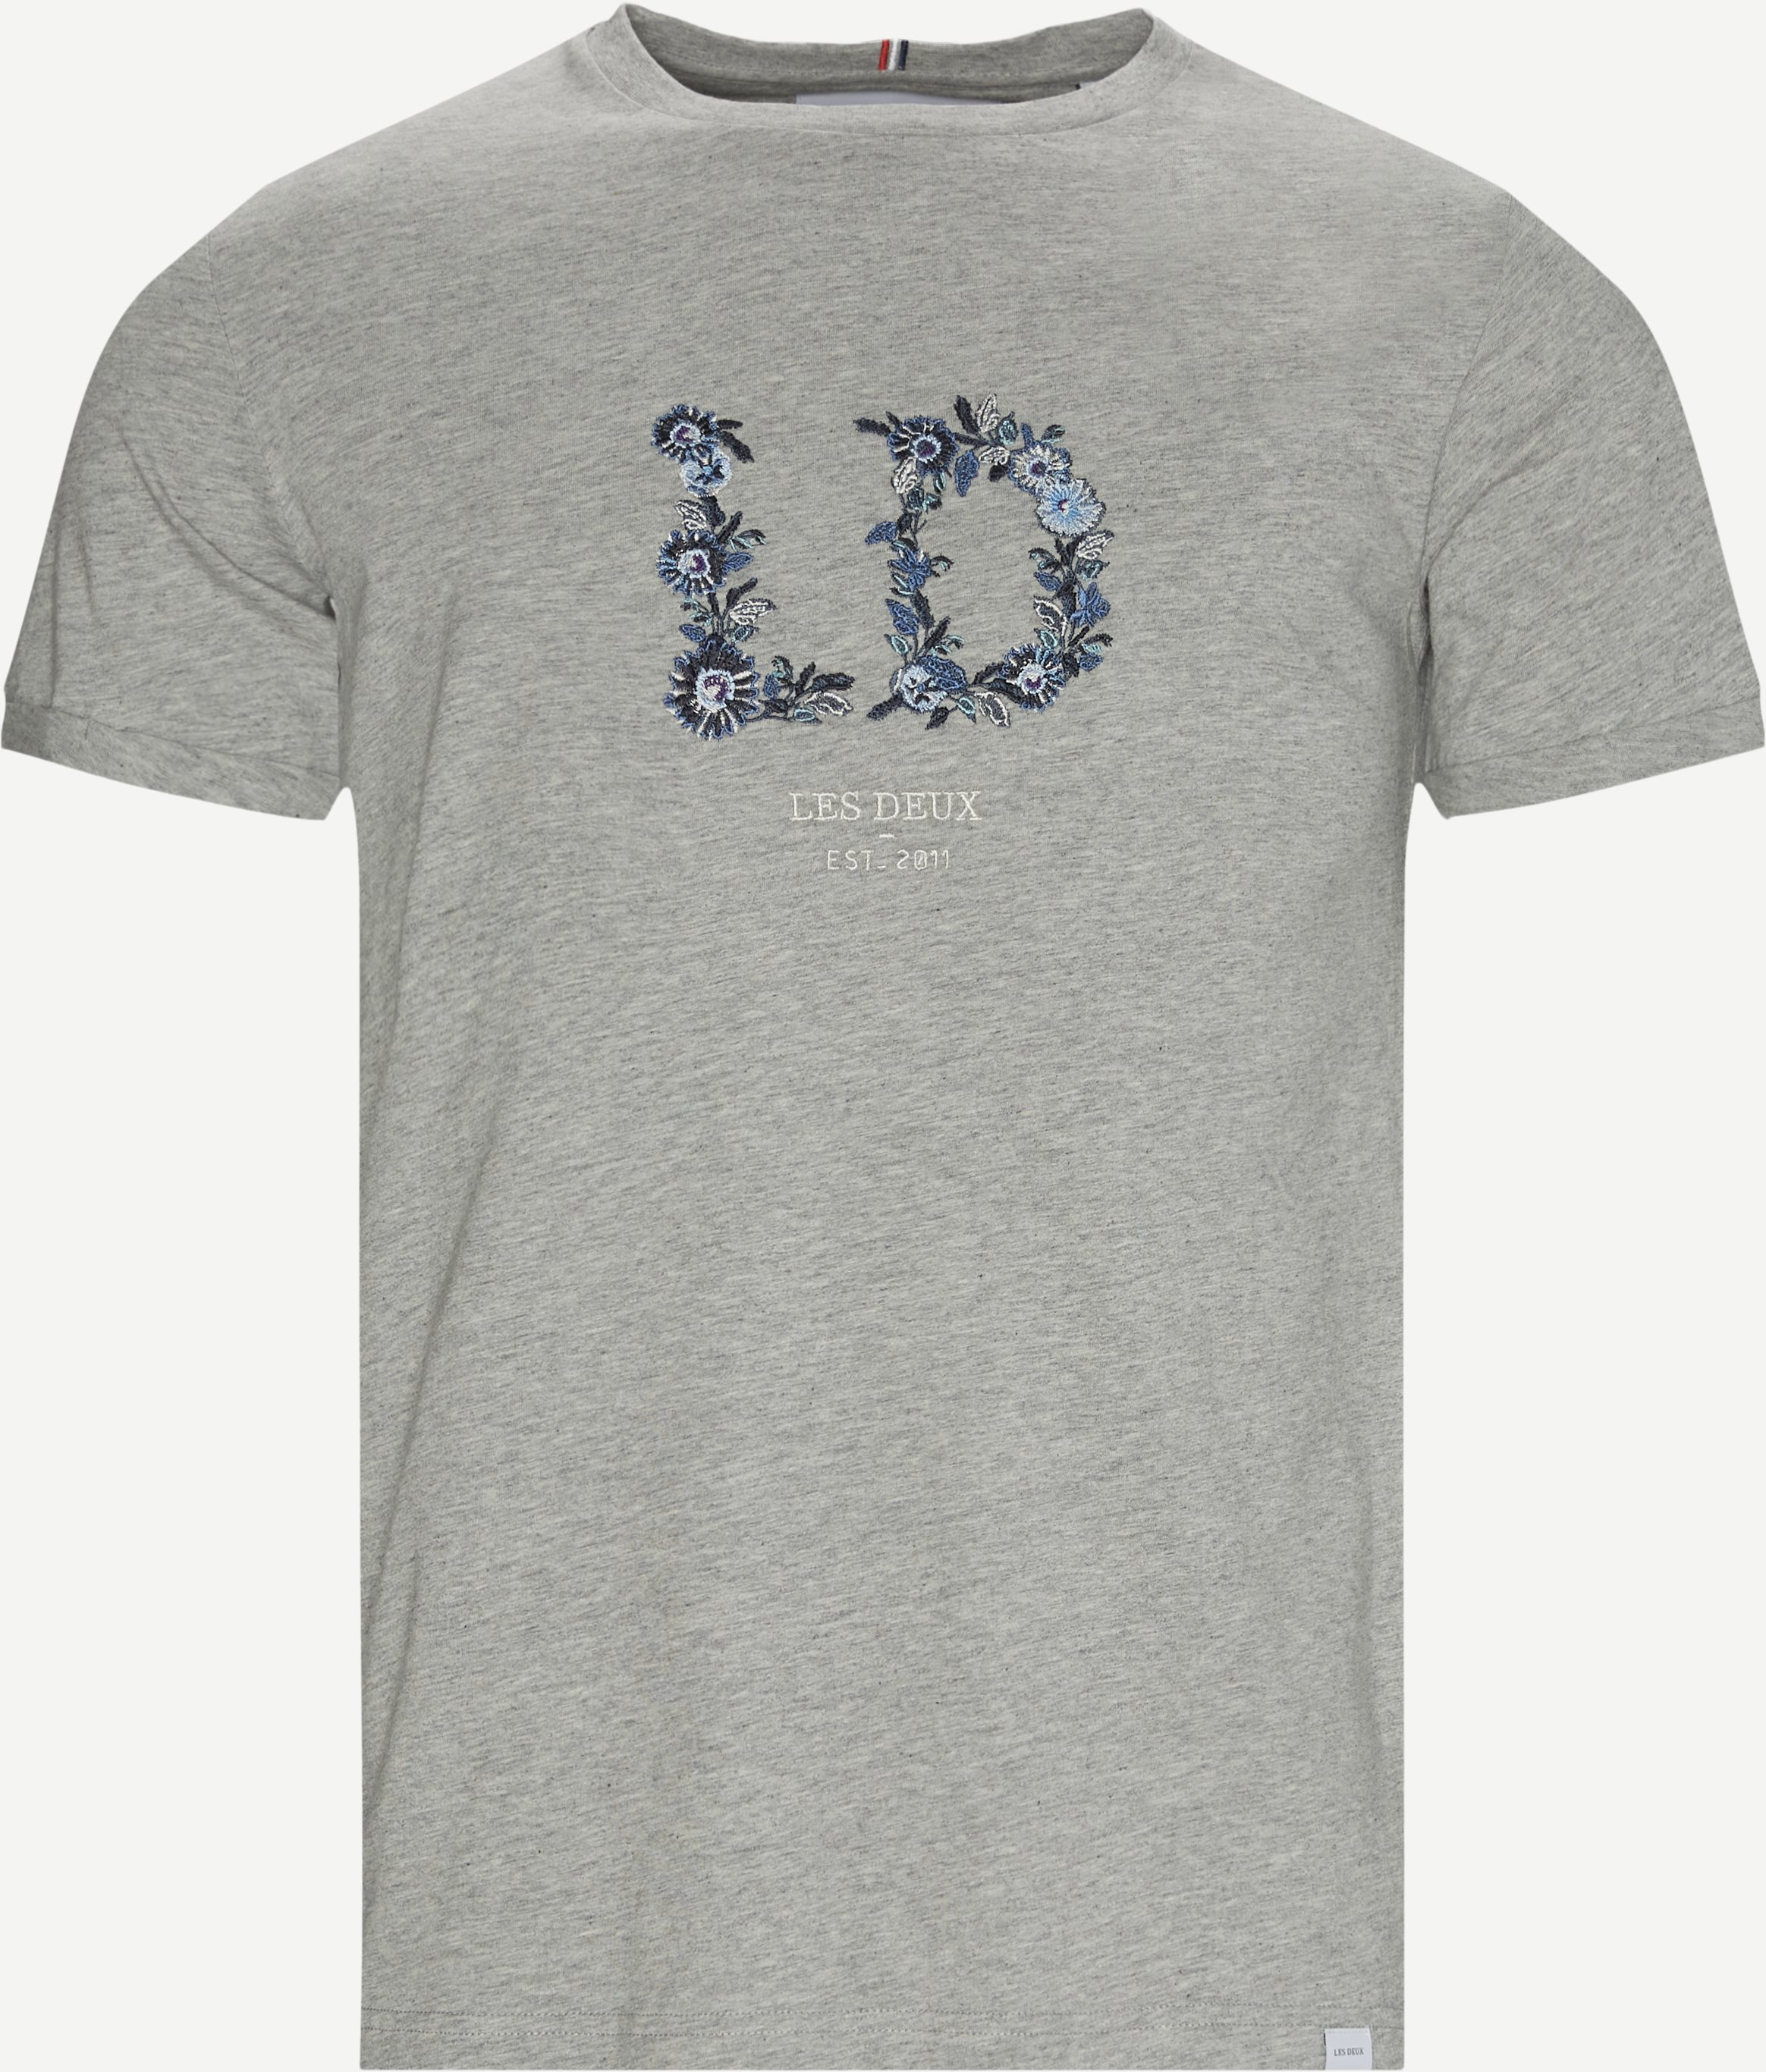 Fiori T-shirt - T-shirts - Regular - Grey